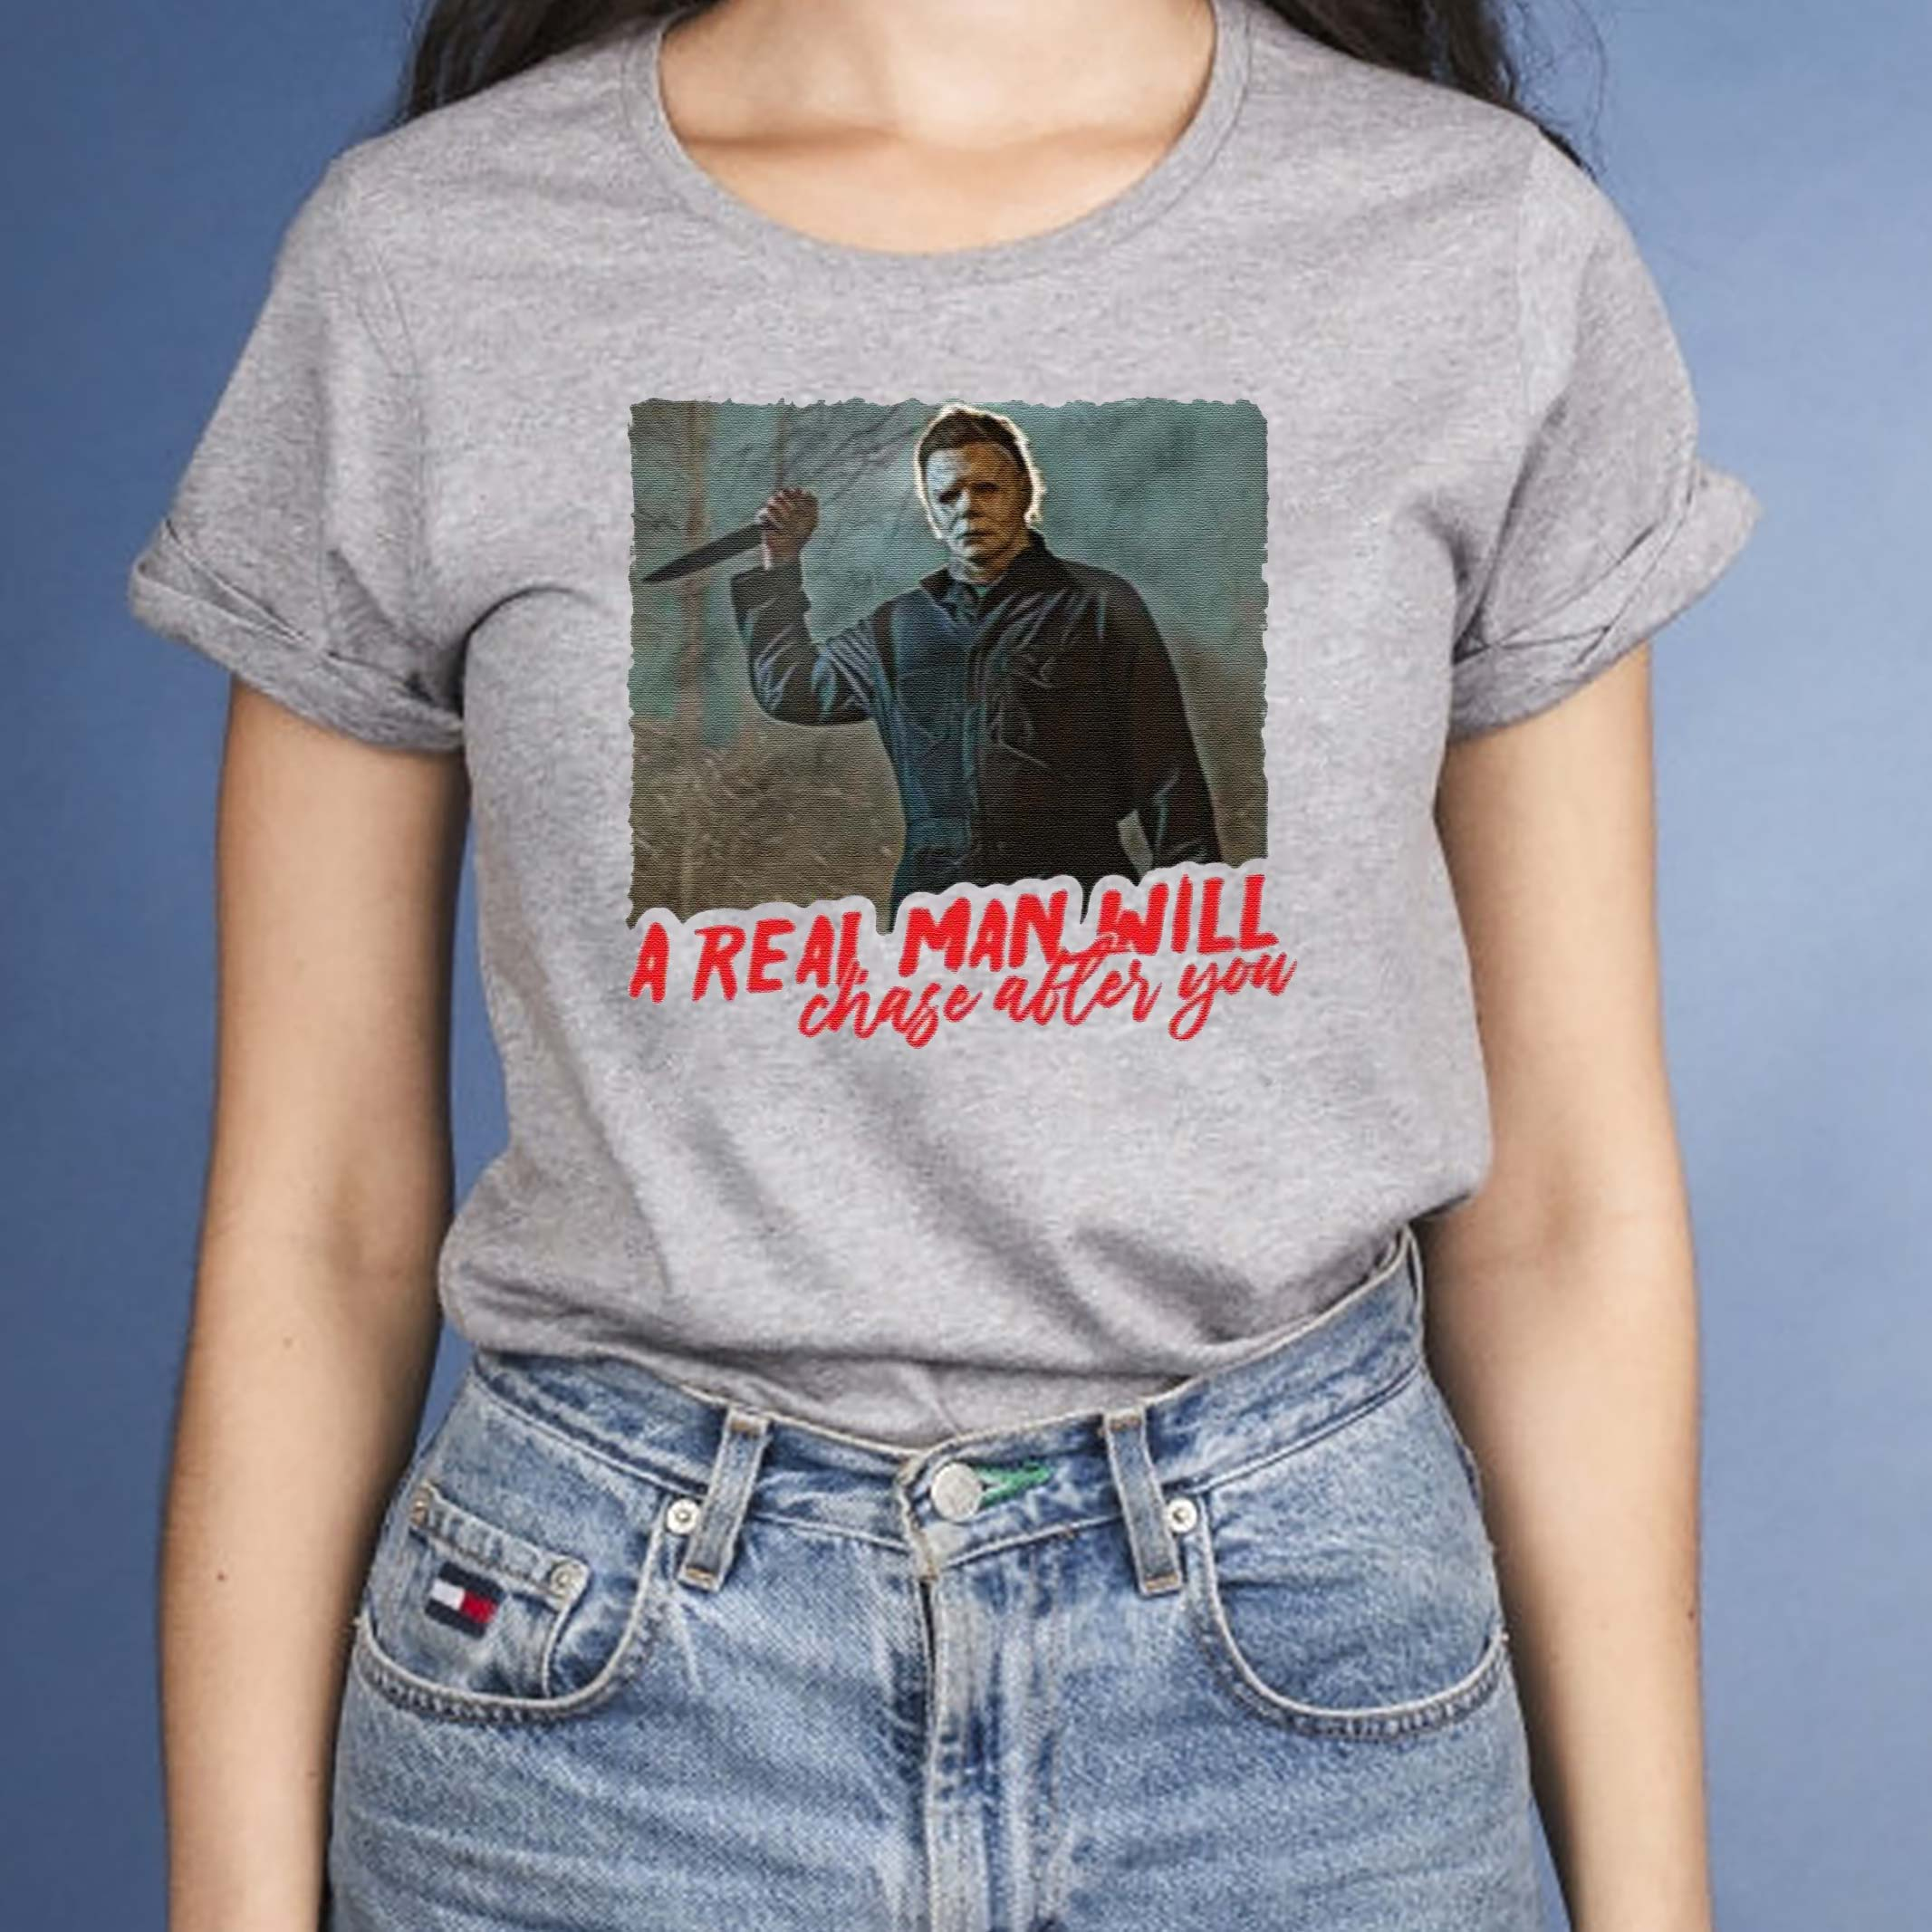 Michael-Myers-A-Real-Man-Will-Chase-After-You-shirts